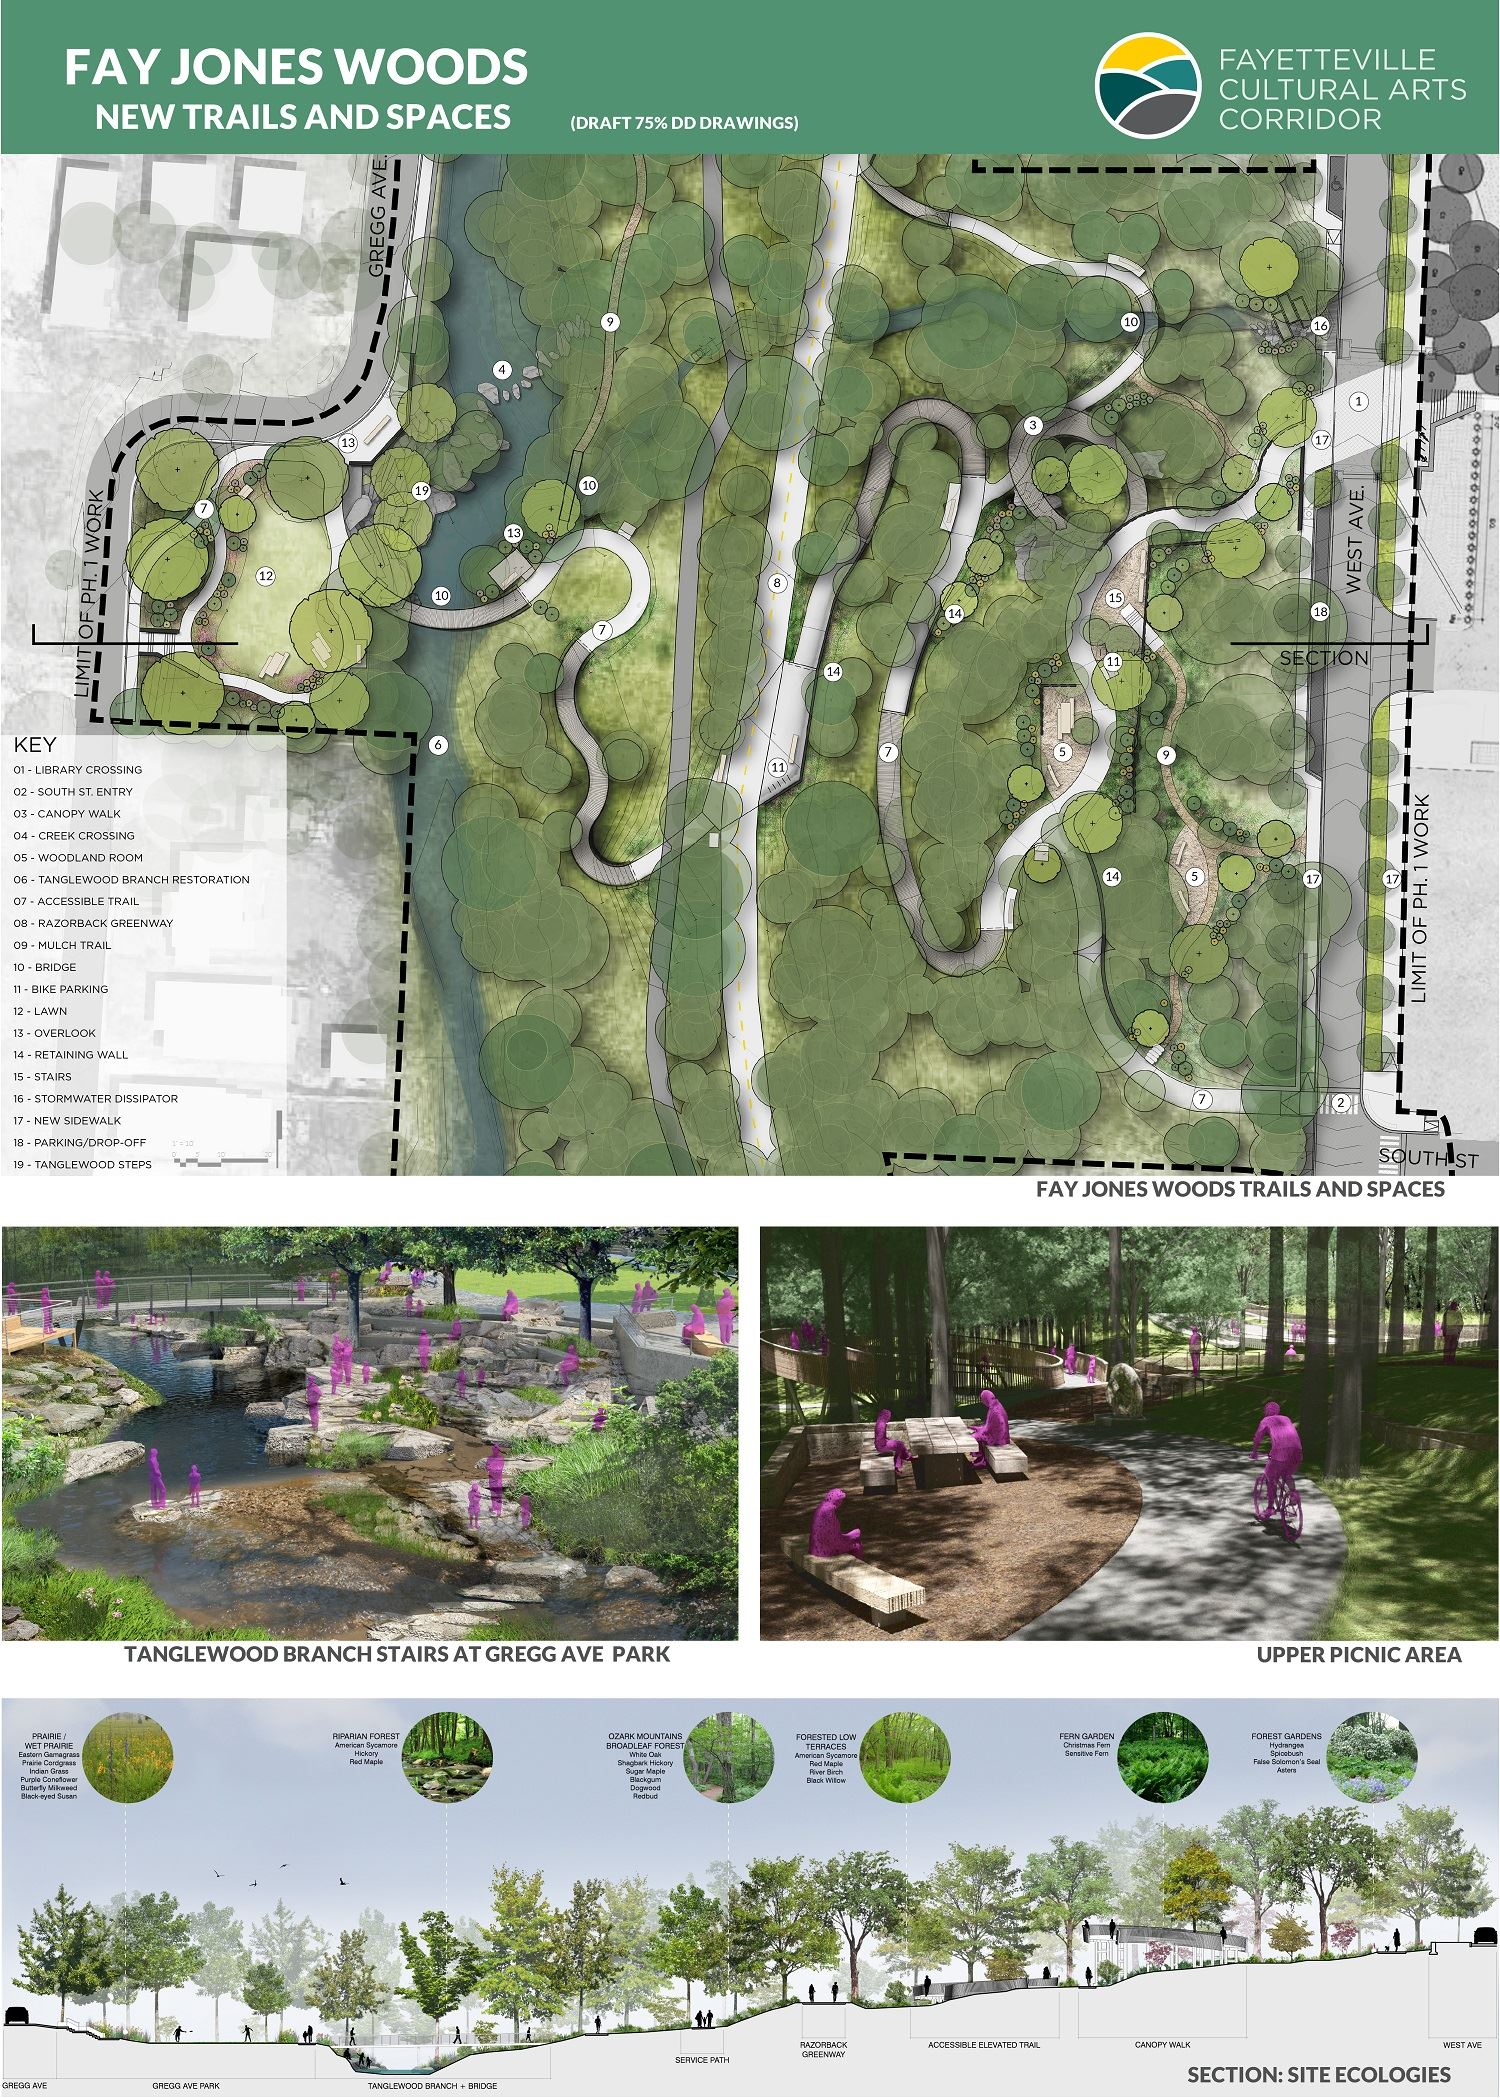 Images of Fay Jones Woods, new trails and spaces drawings